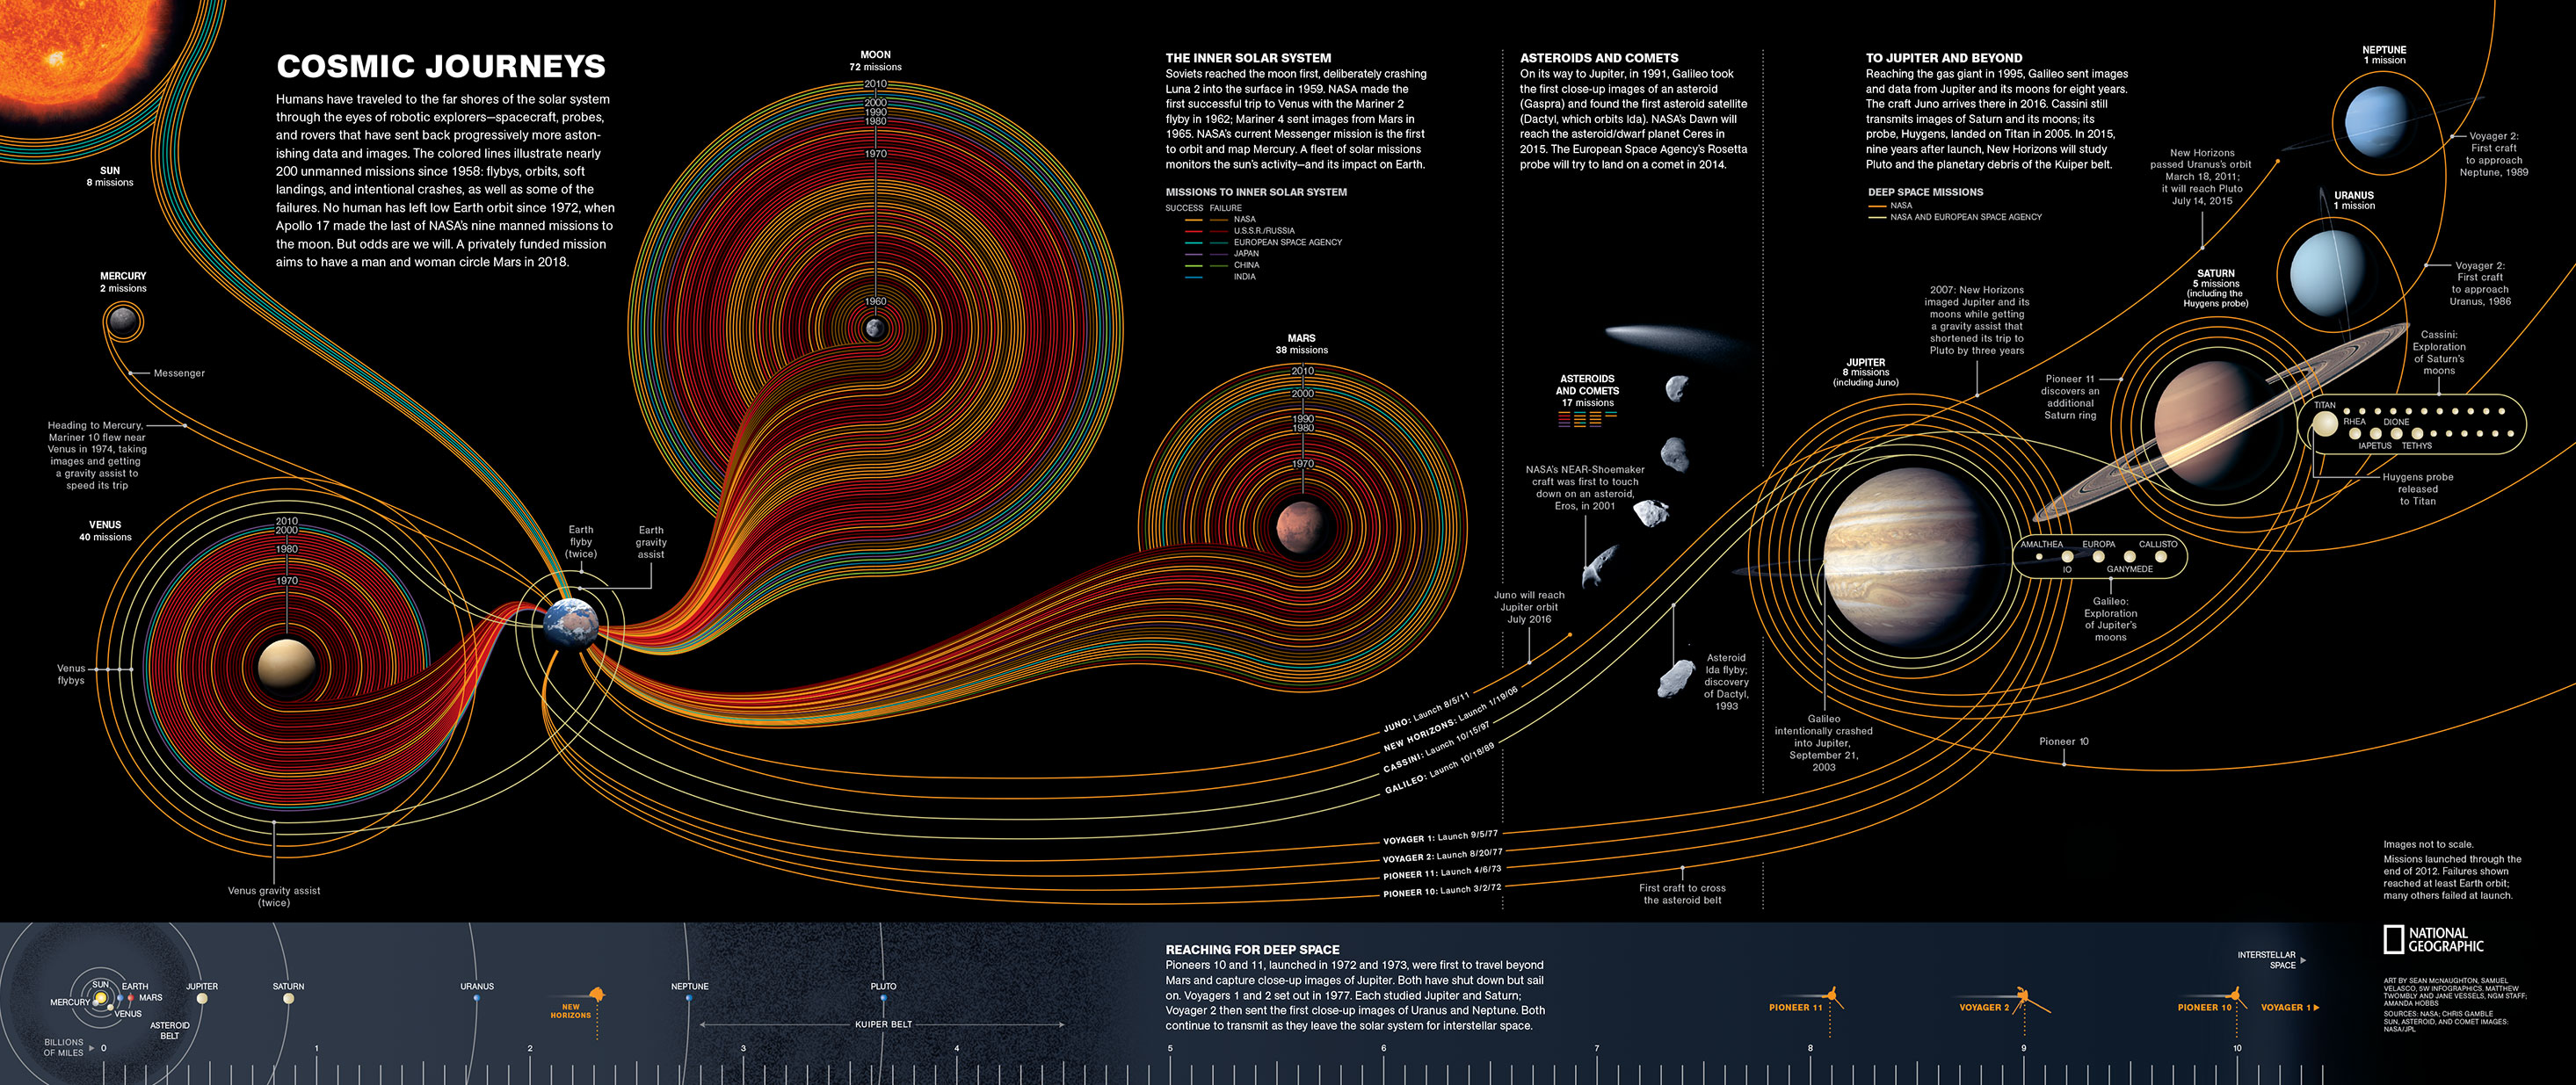 Cosmic Journey by Sean McNaughton, Samuel Velasco, 5W Infographics, Matthew Twombly and Jane Vessels, NGM staff, Amanda Hobbs. Source: NASA, Chris Gamble.